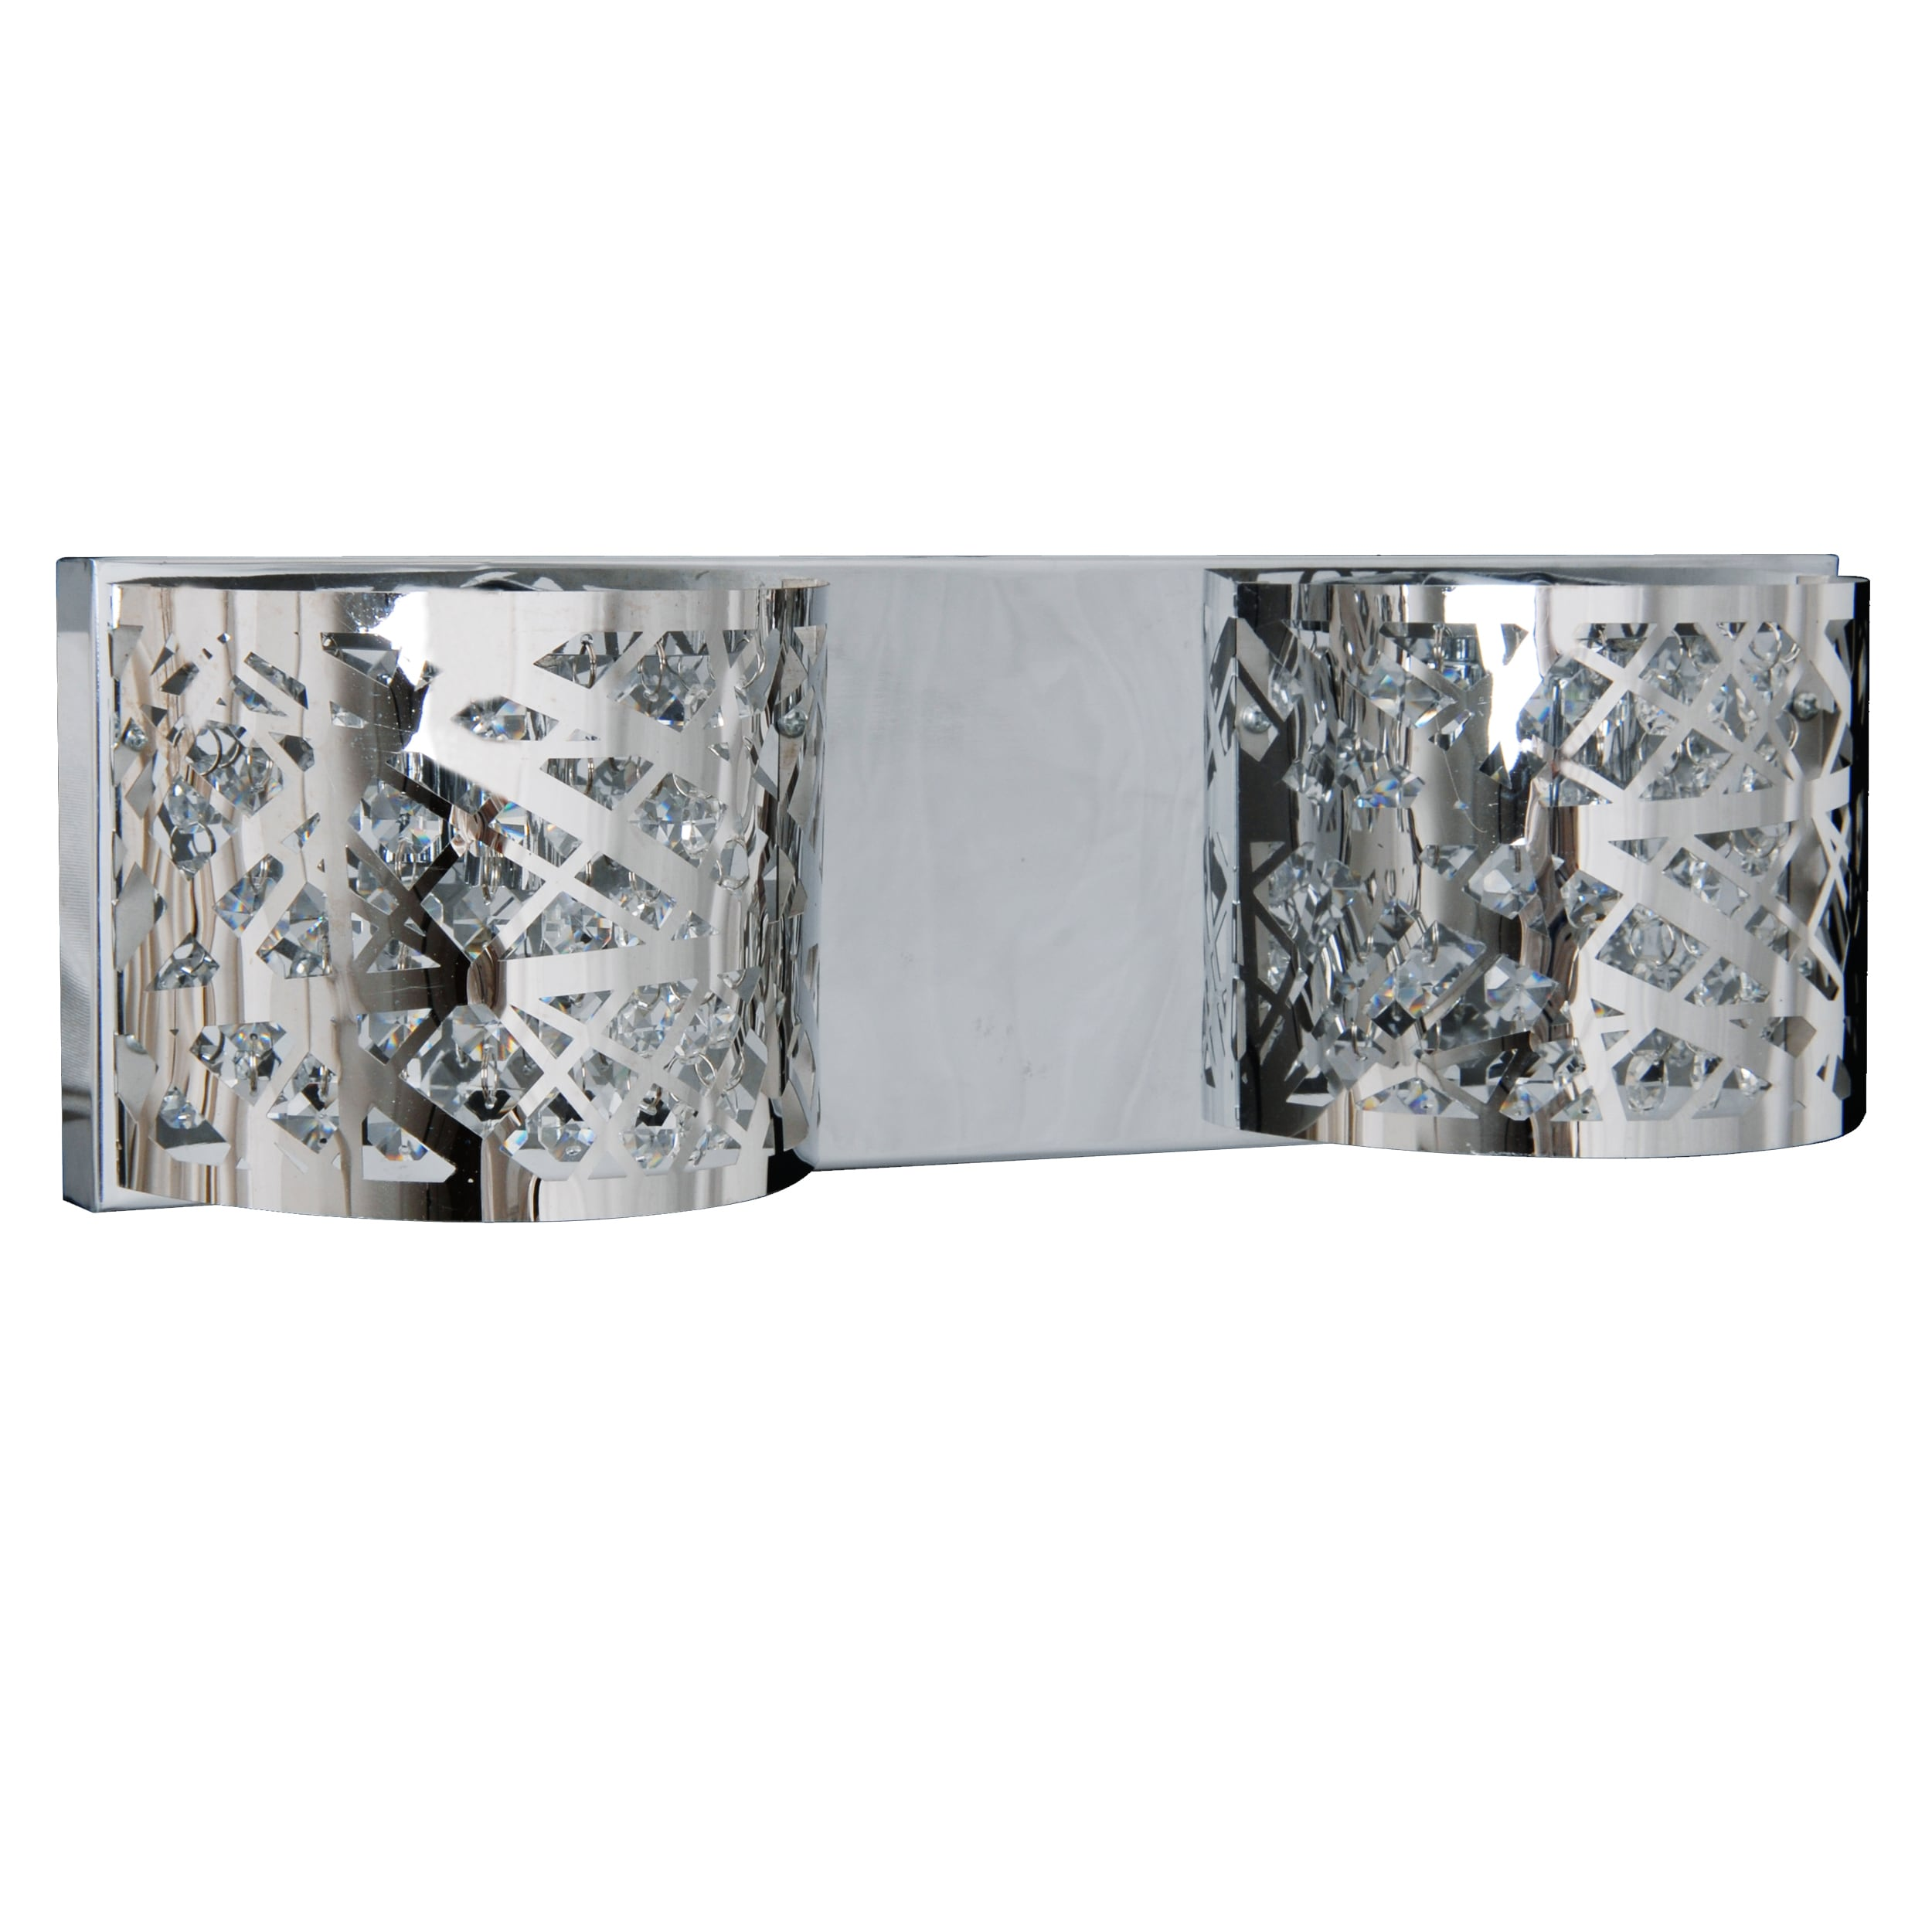 Two-point silver wall lamp Cairo